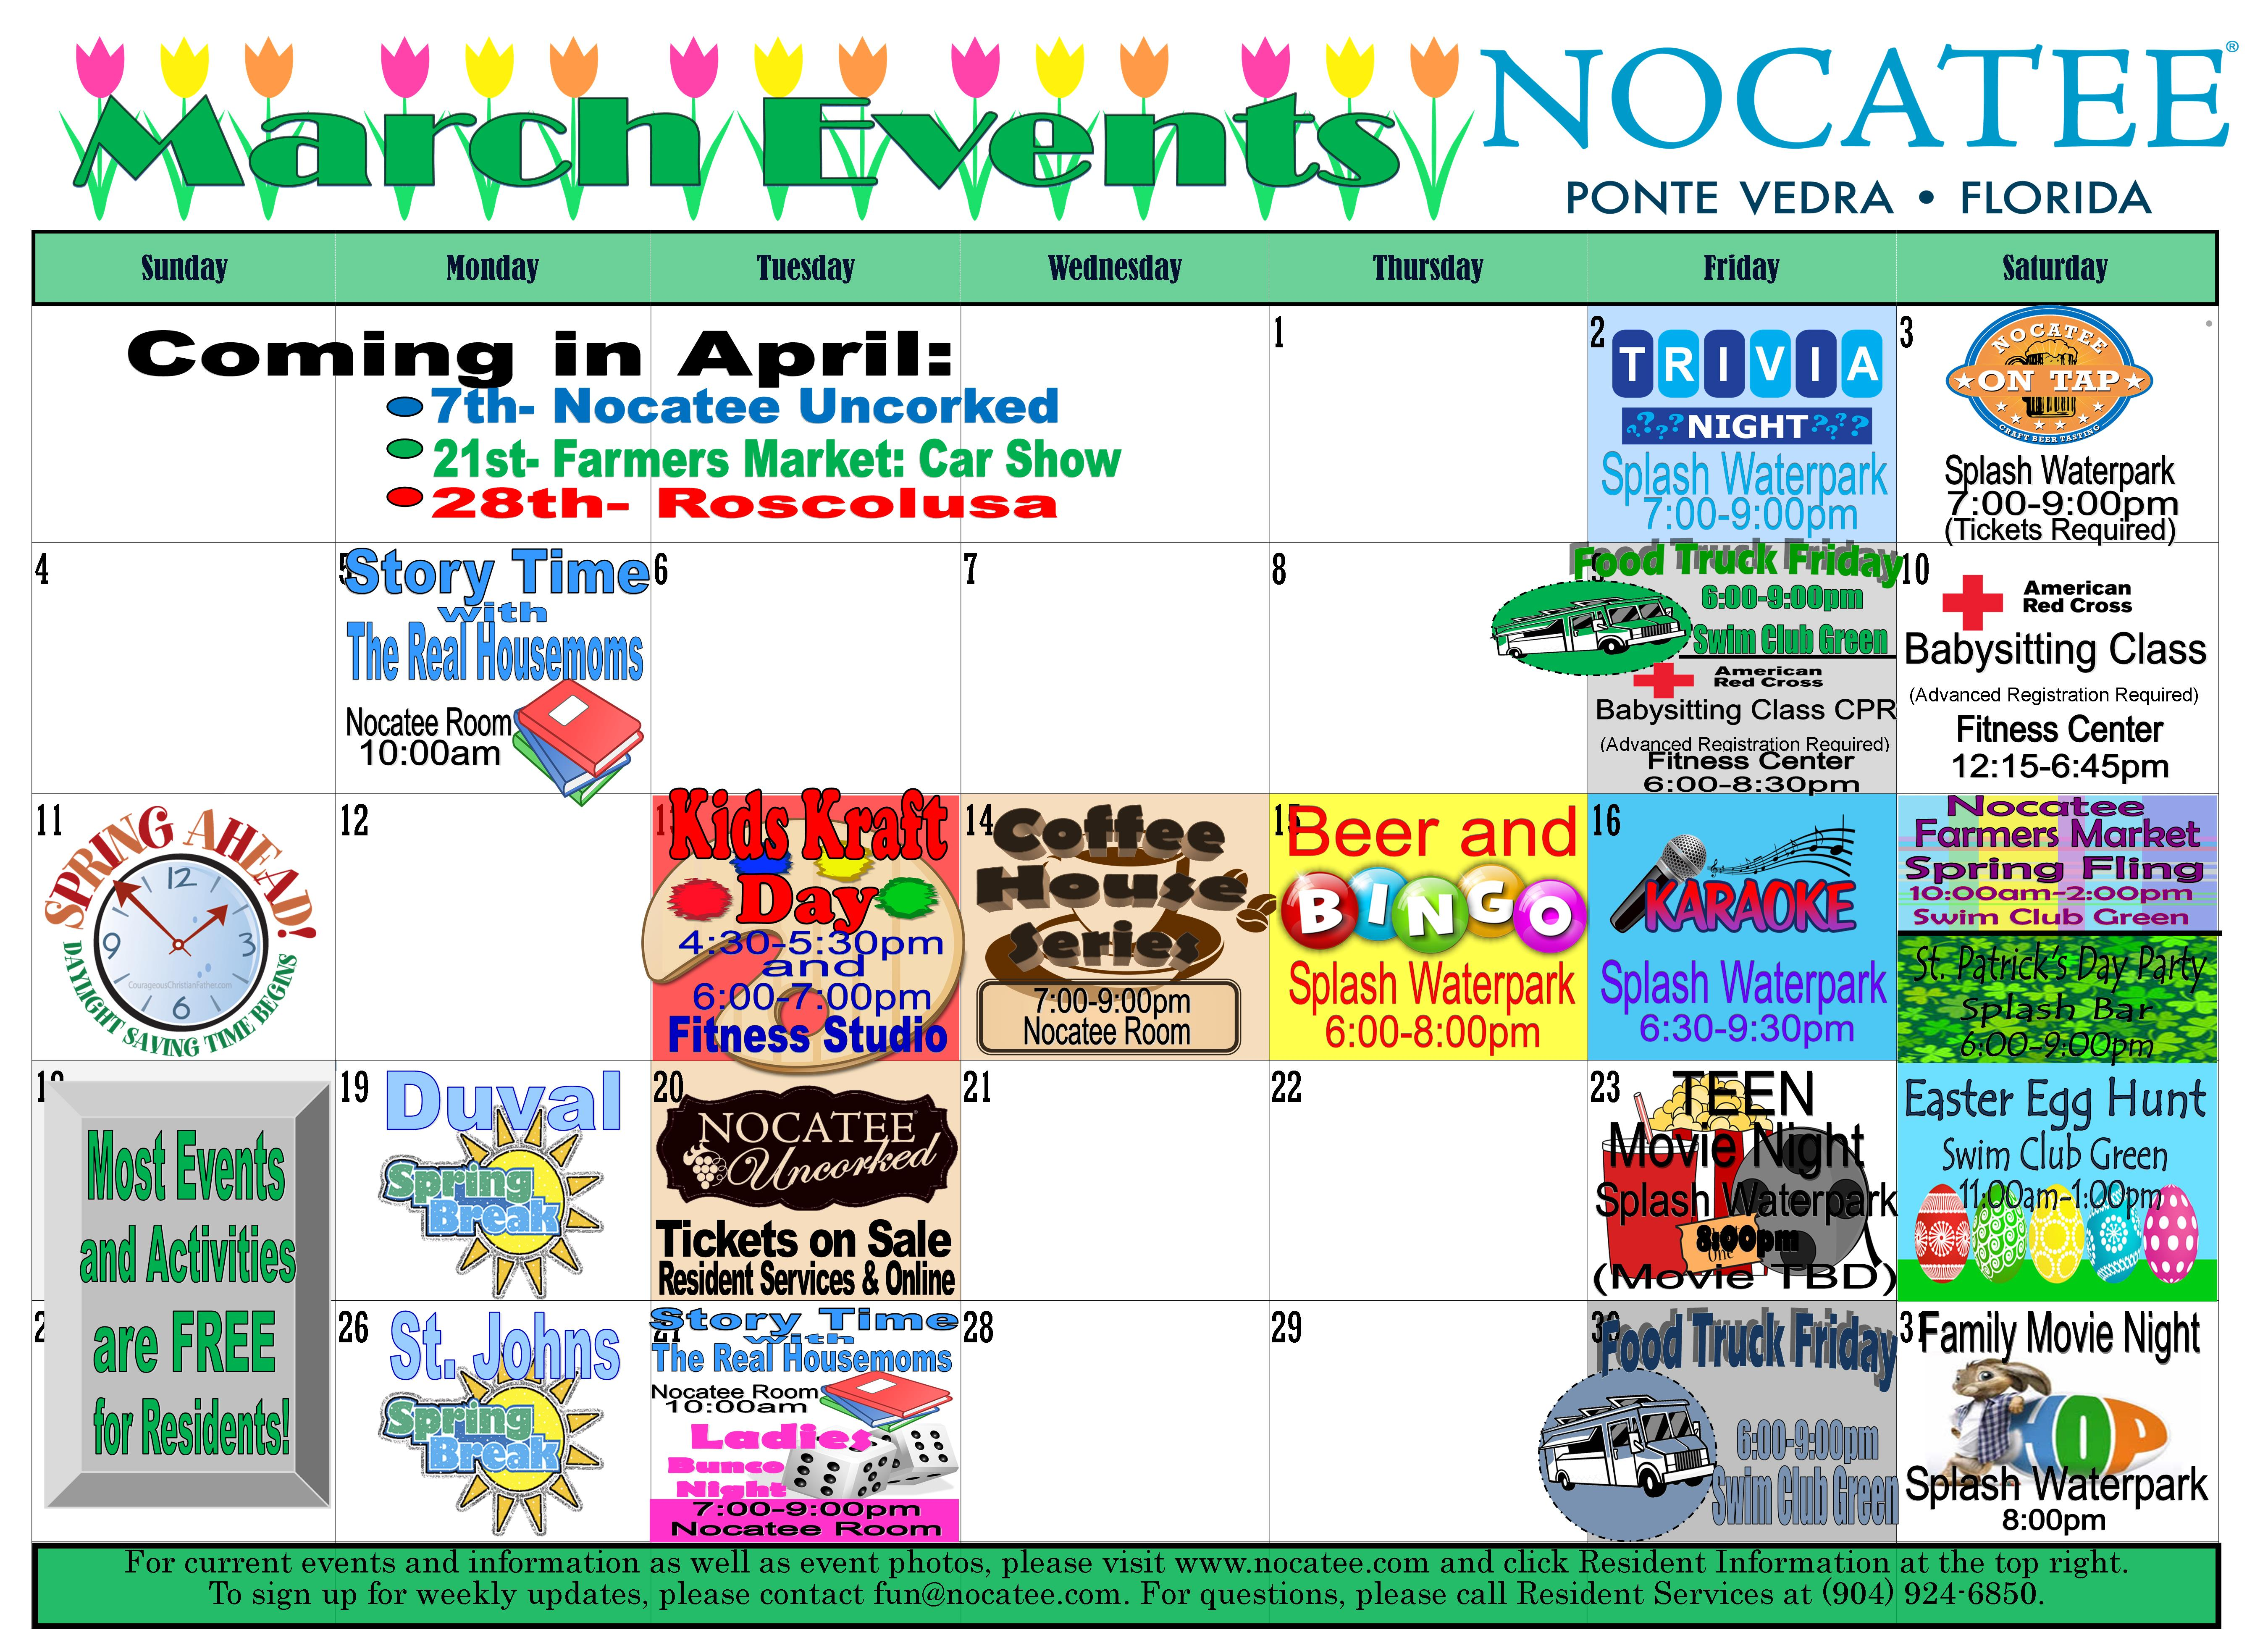 march 18 events-1.jpg